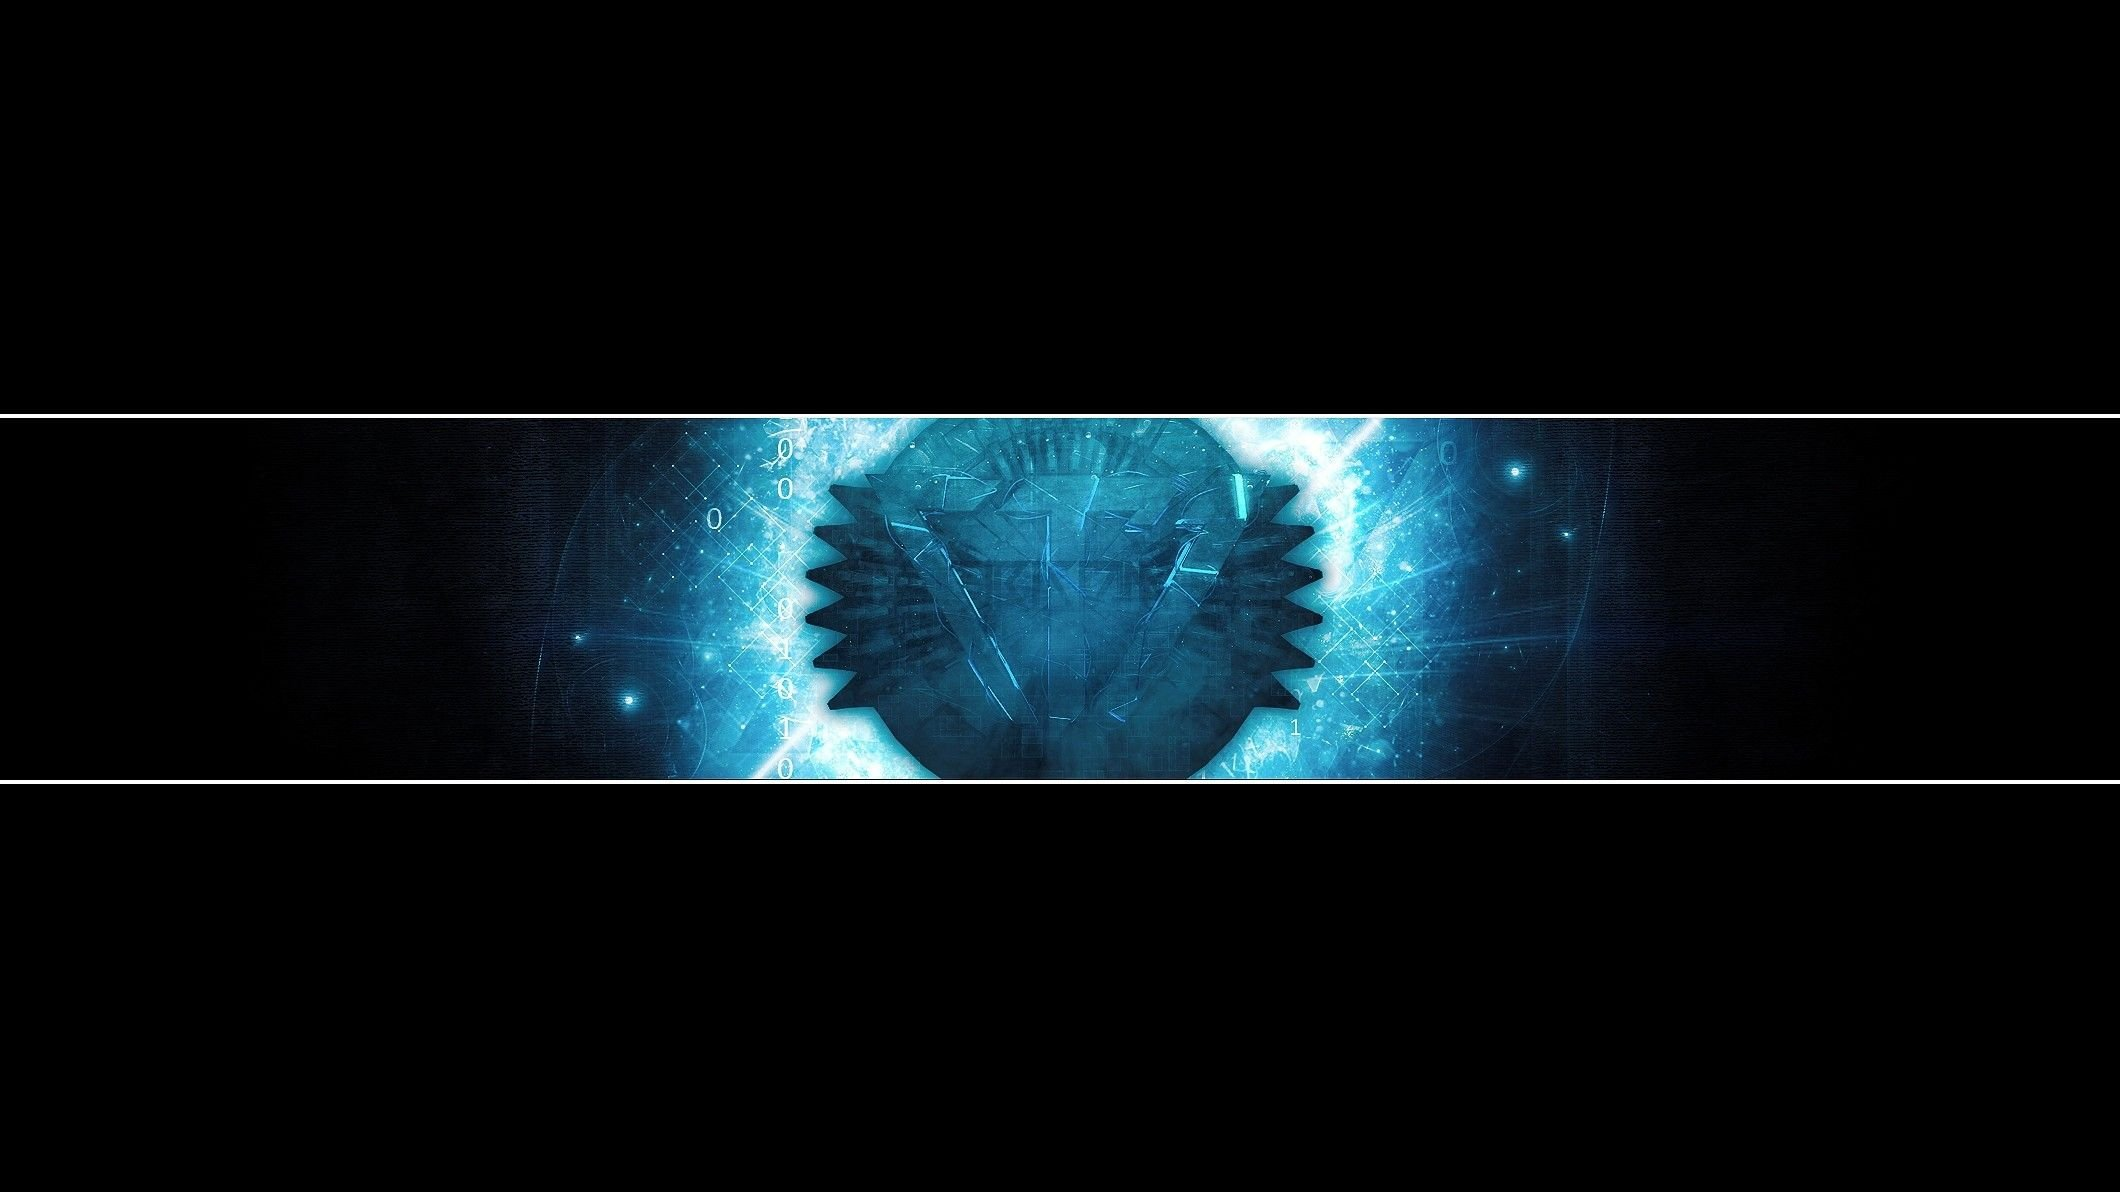 Youtube Banner Wallpapers Top Free Youtube Banner Backgrounds